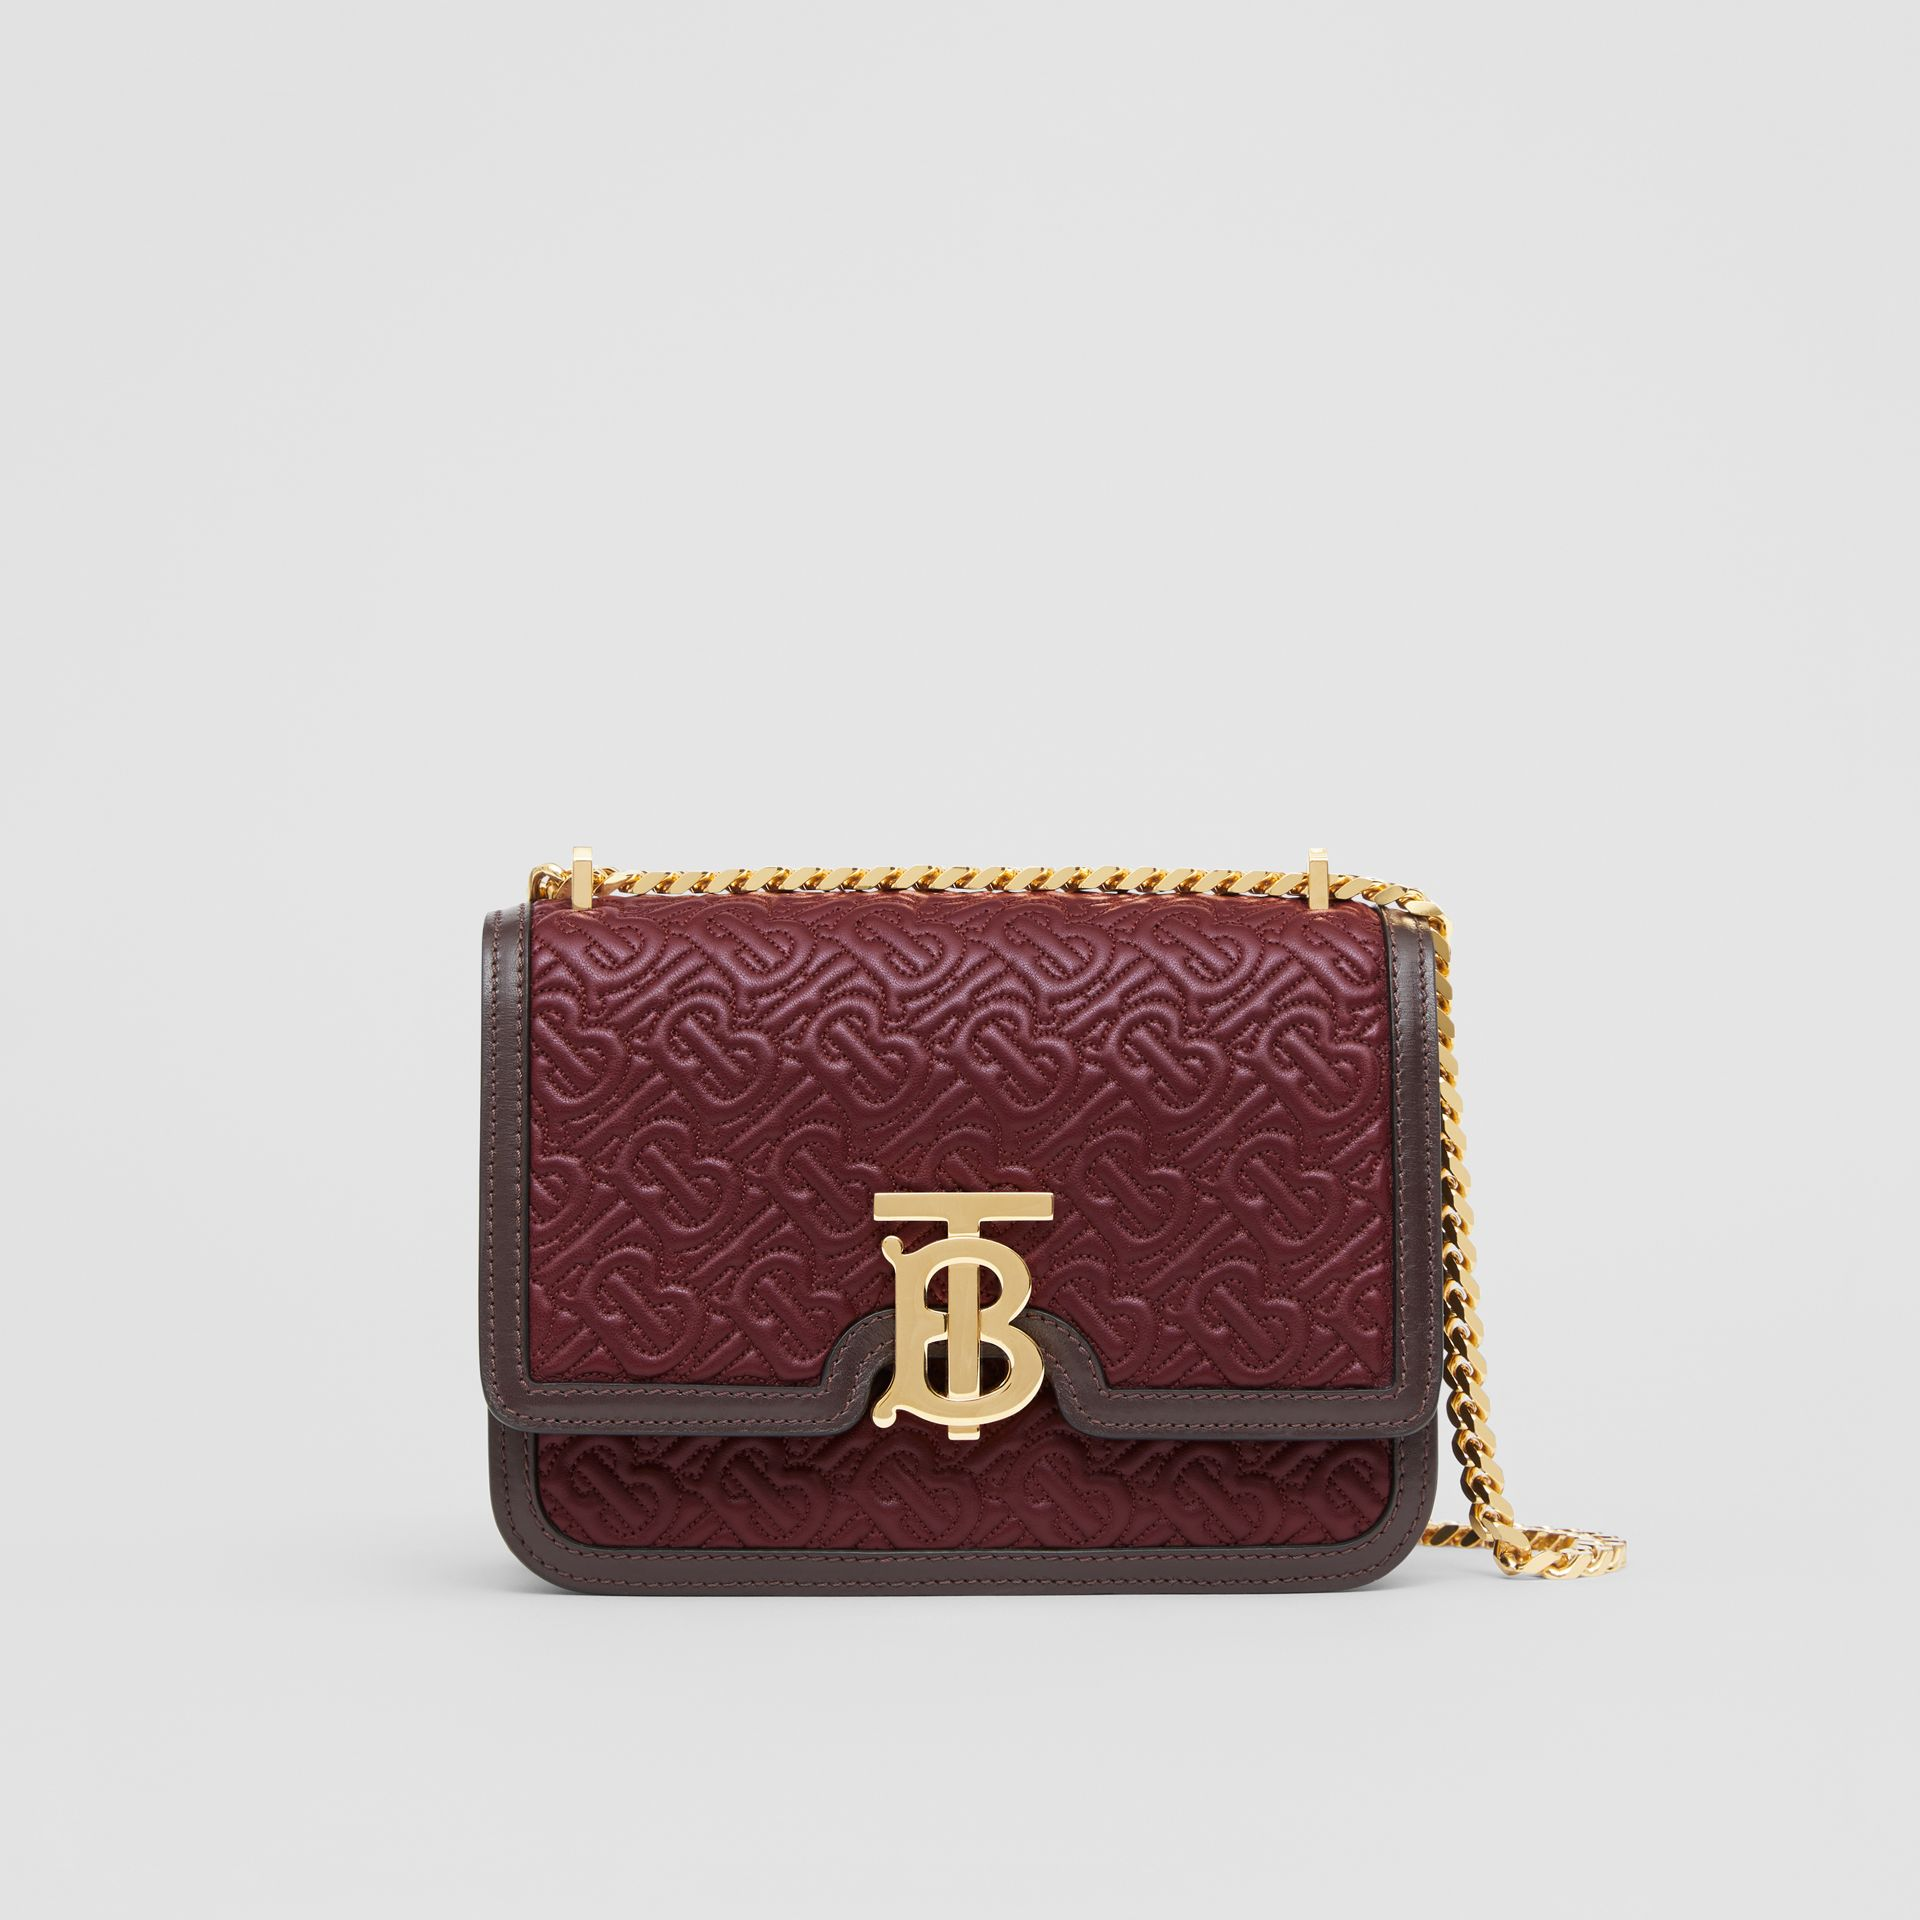 Small Quilted Monogram Lambskin TB Bag in Oxblood - Women | Burberry - gallery image 0